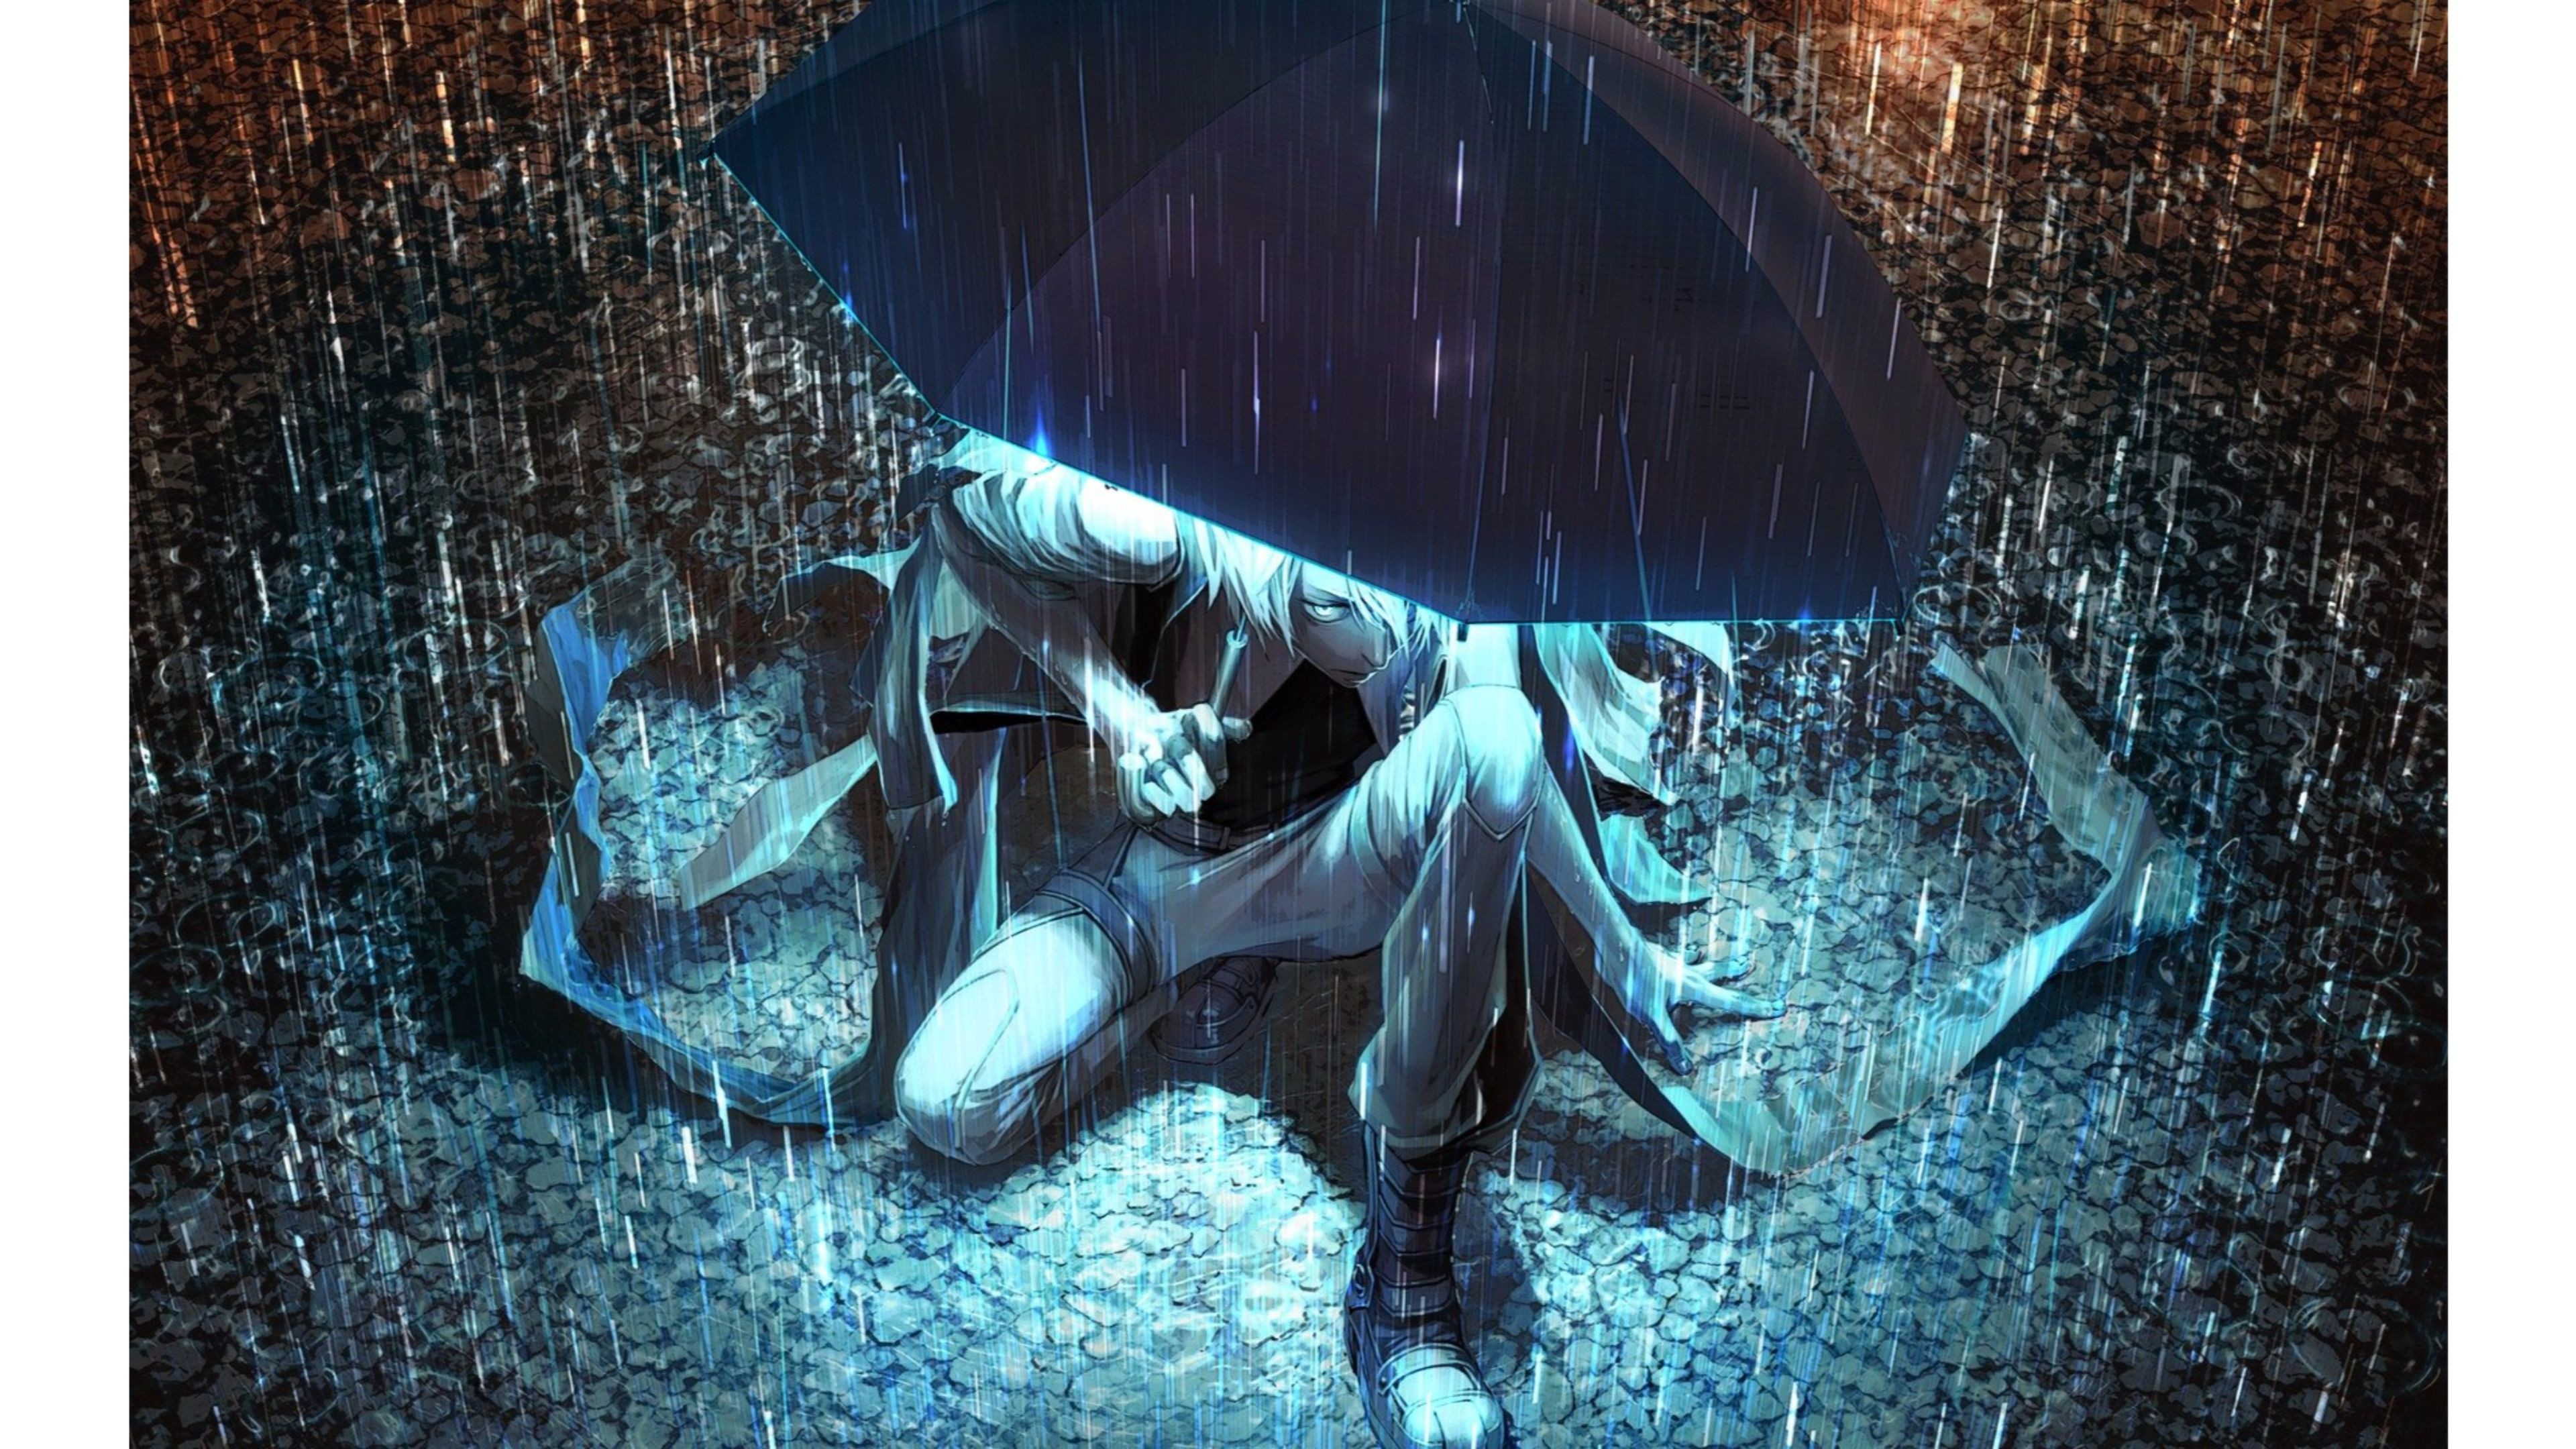 3840x2160 Under The Rain 4K Anime Wallpapers